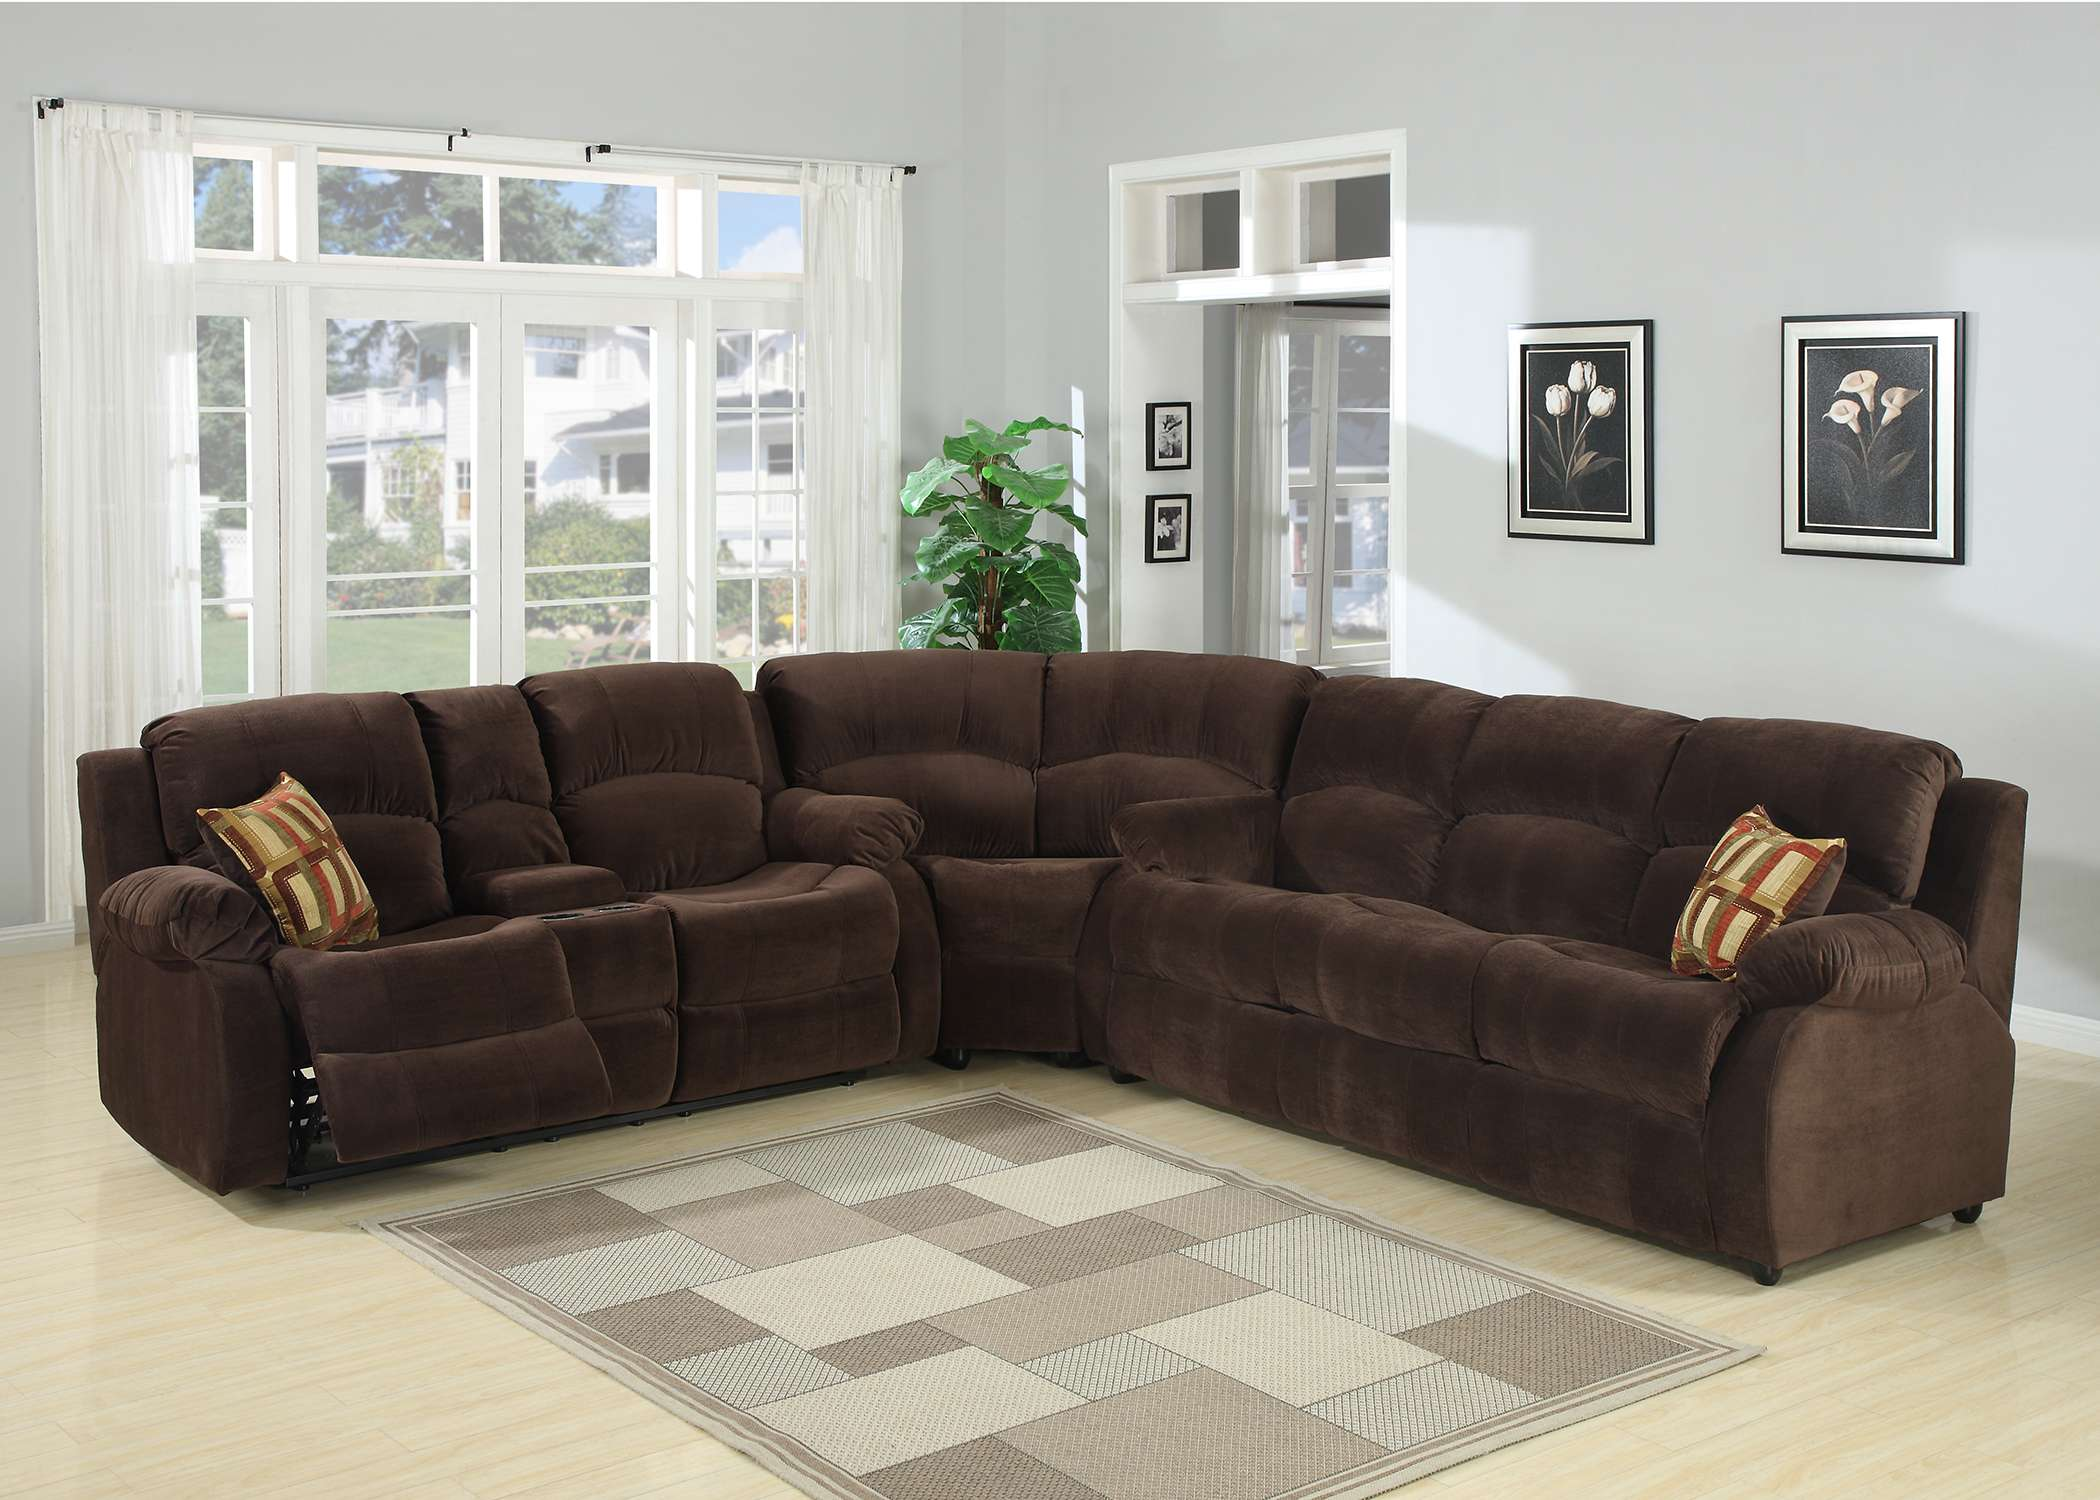 Tracey 3 Piece Transitional Sectional With Queen Sofa Bed And Reclining  Love Seat With Storage